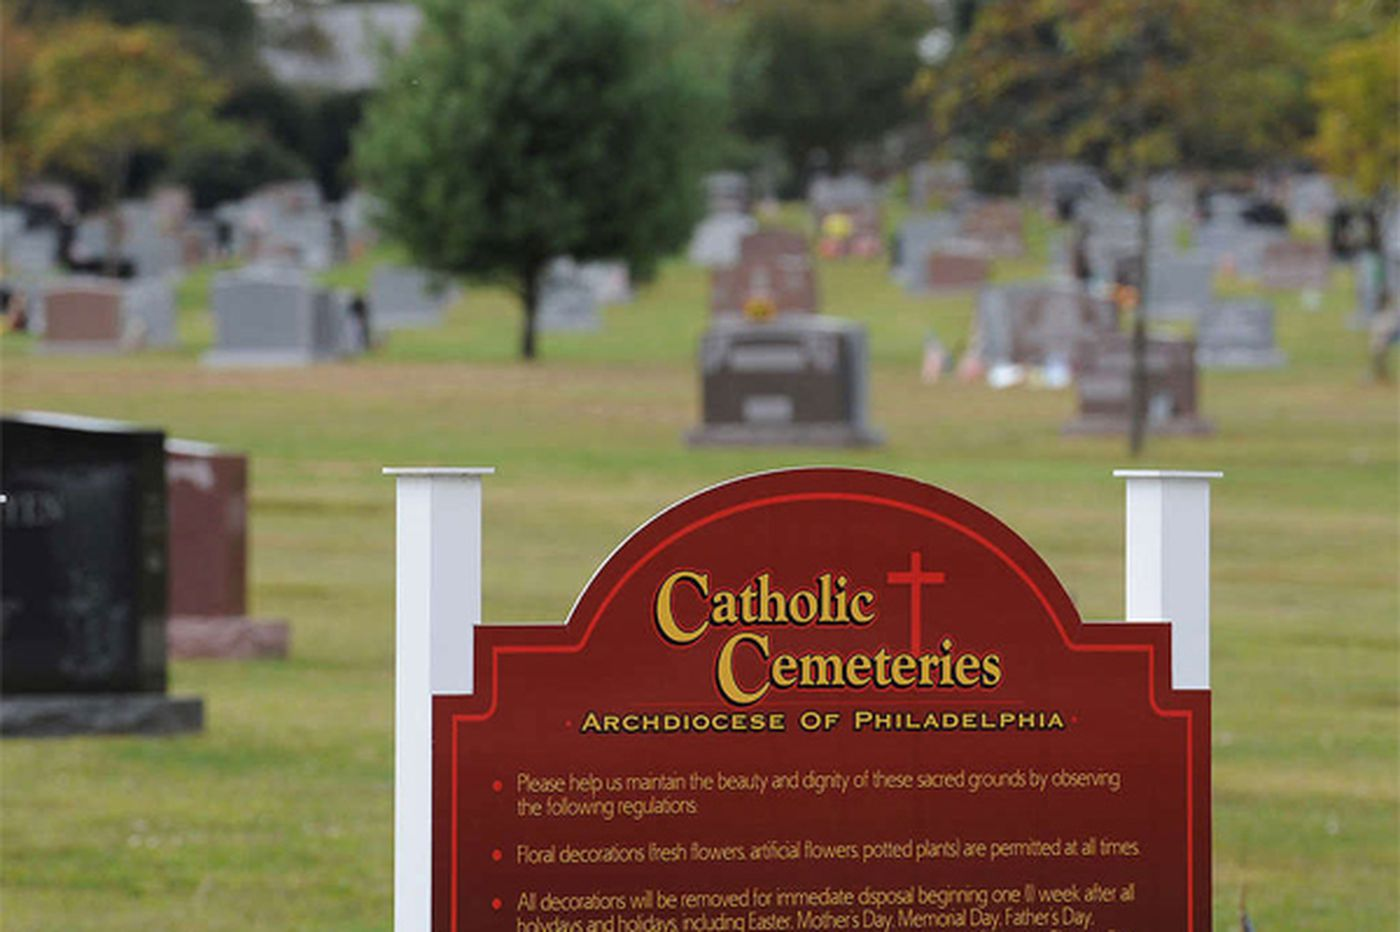 Archdiocese's bid to lease 13 cemeteries has court date